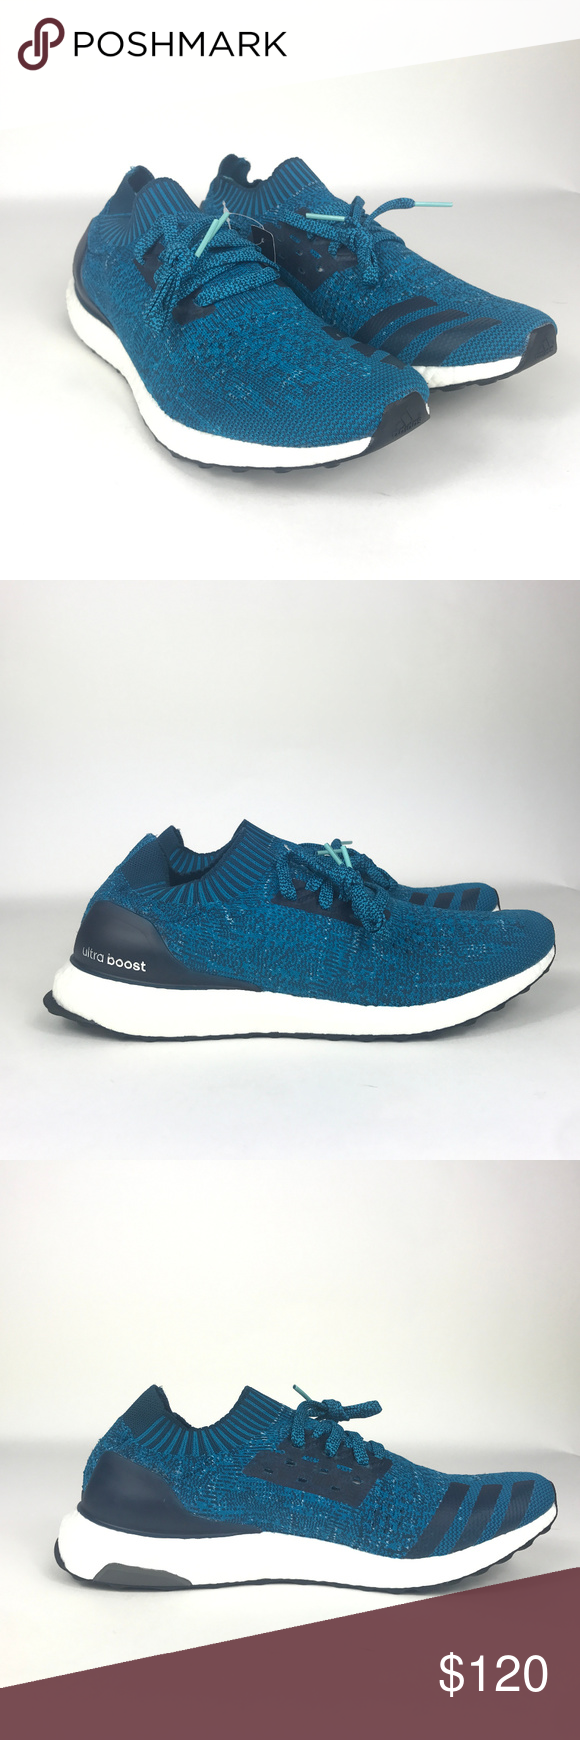 a5765d1a7e538 Adidas Ultraboost Ultra boost Uncaged BY2555 Blue Brand New Adidas  Ultraboost Ultra boost Uncaged BY2555 Blue